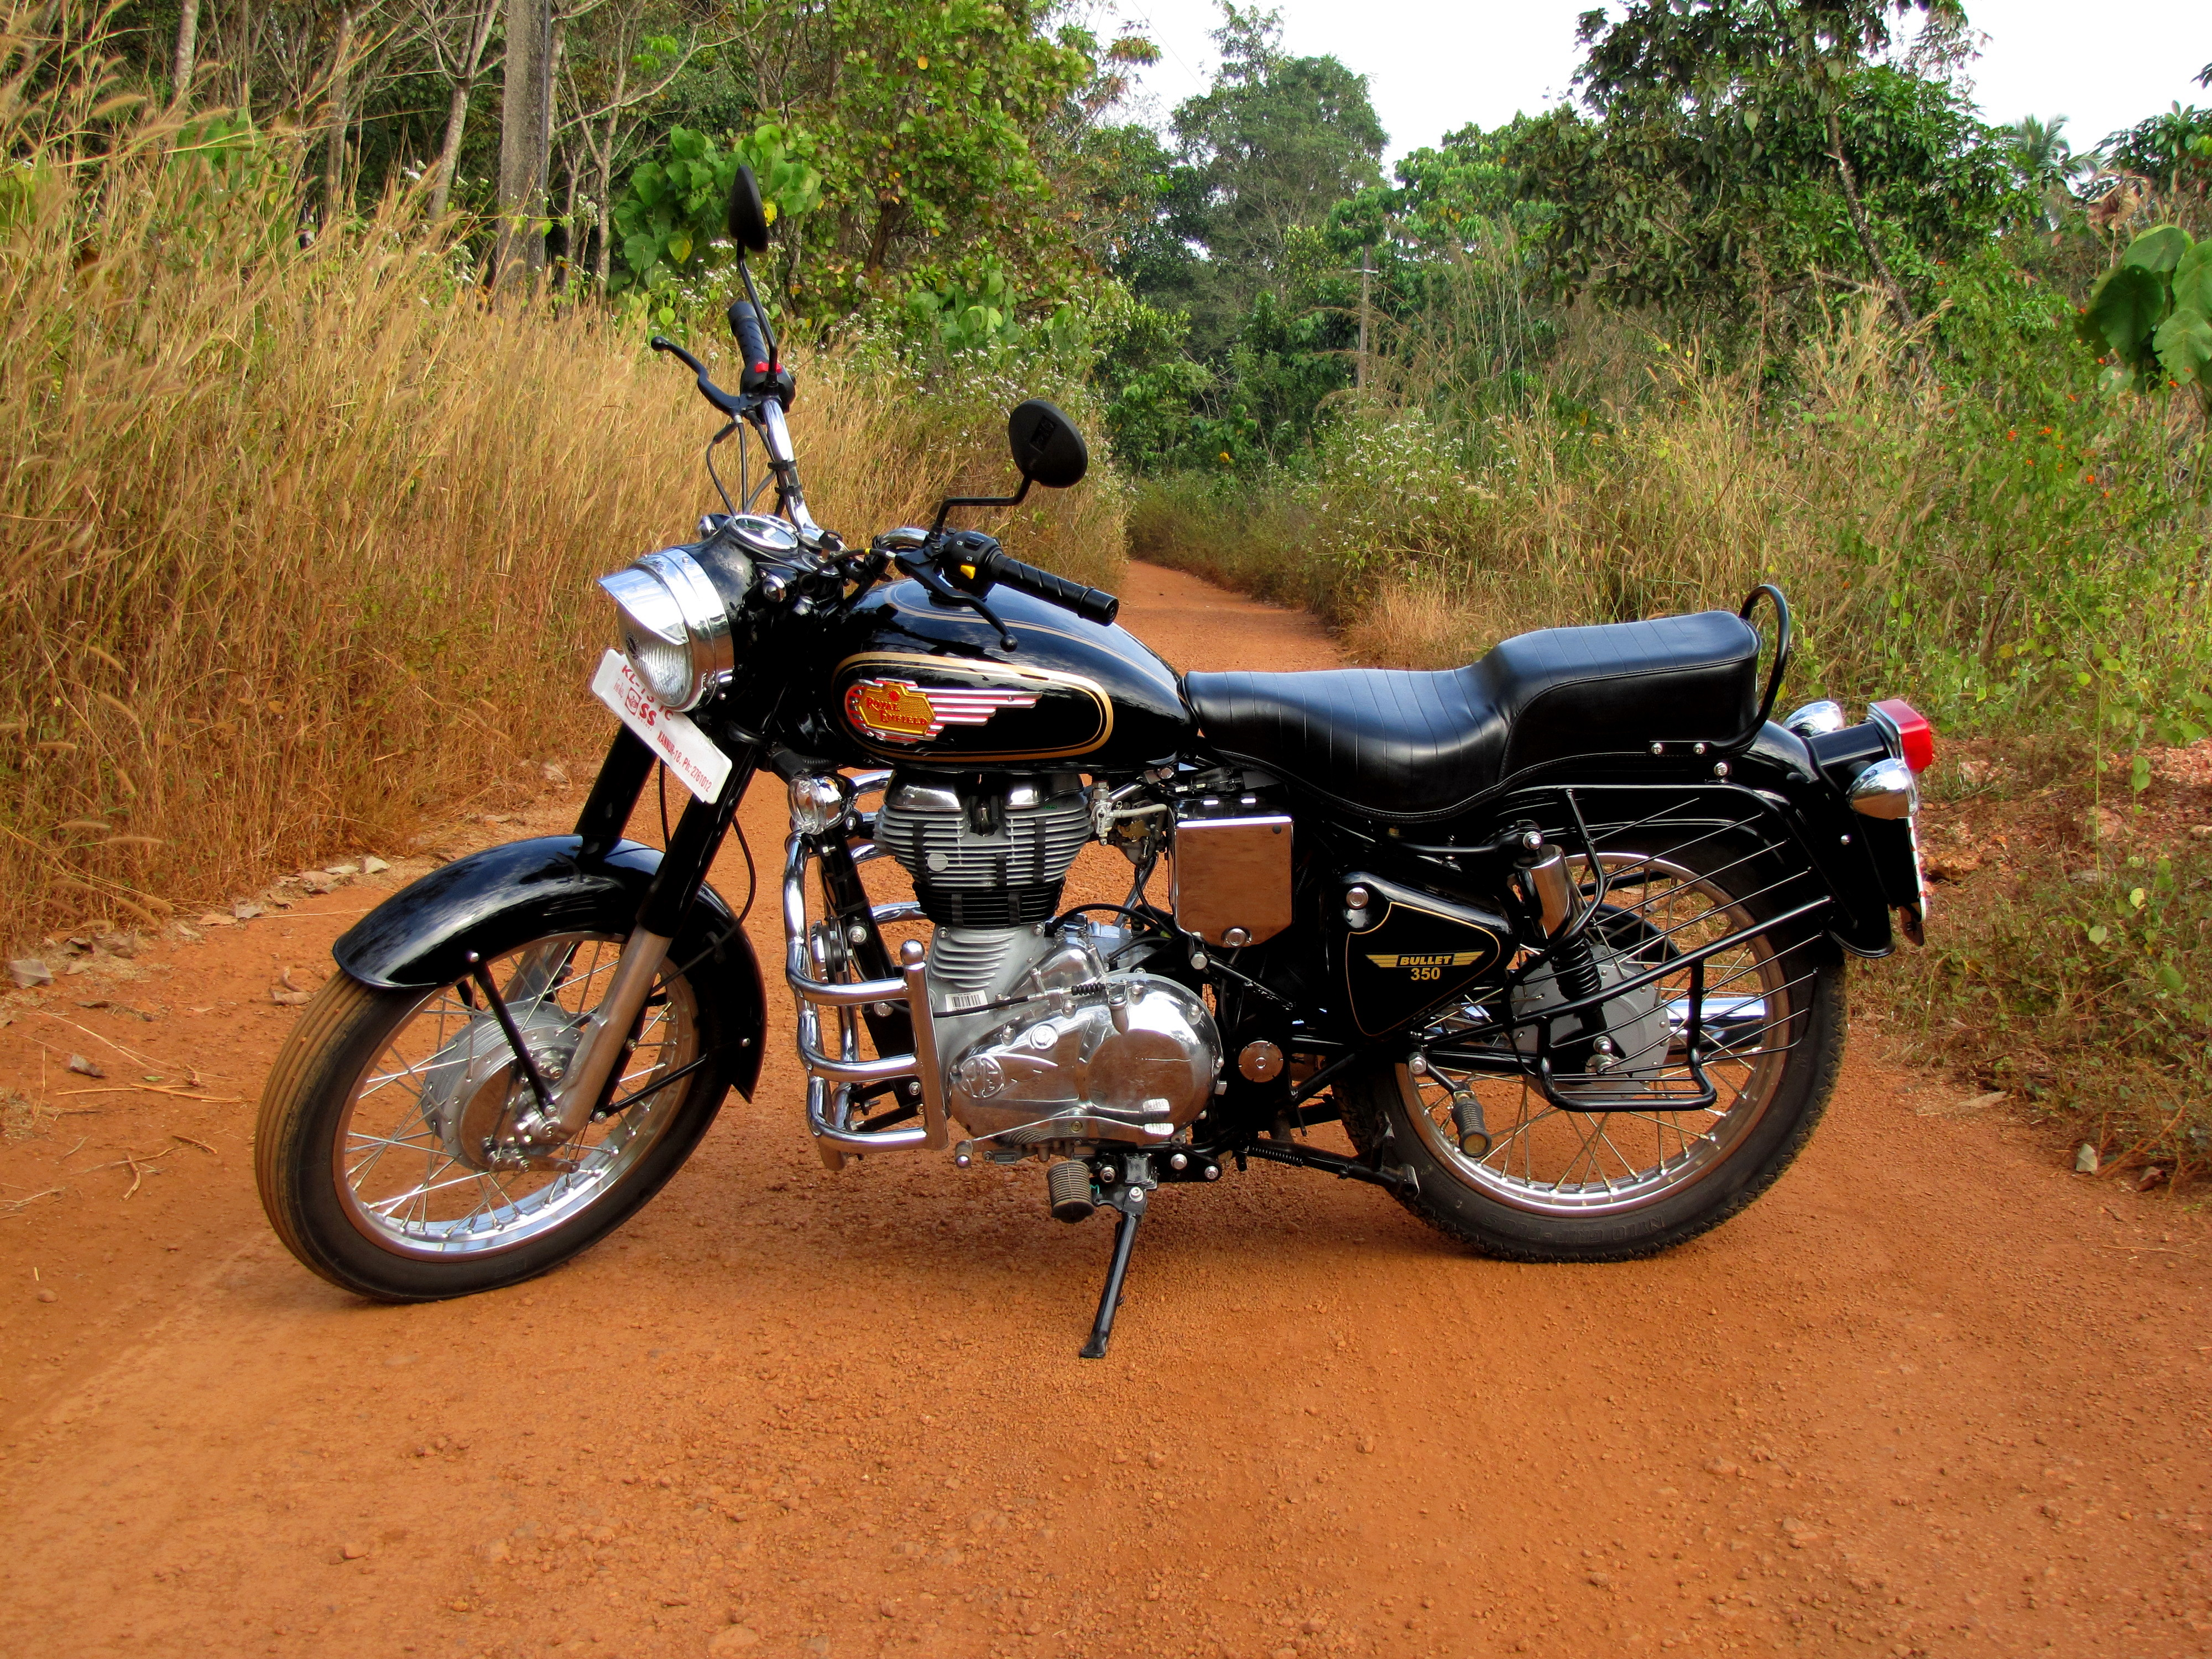 Royal Enfield Bullet 500 Army 2001 images #126030